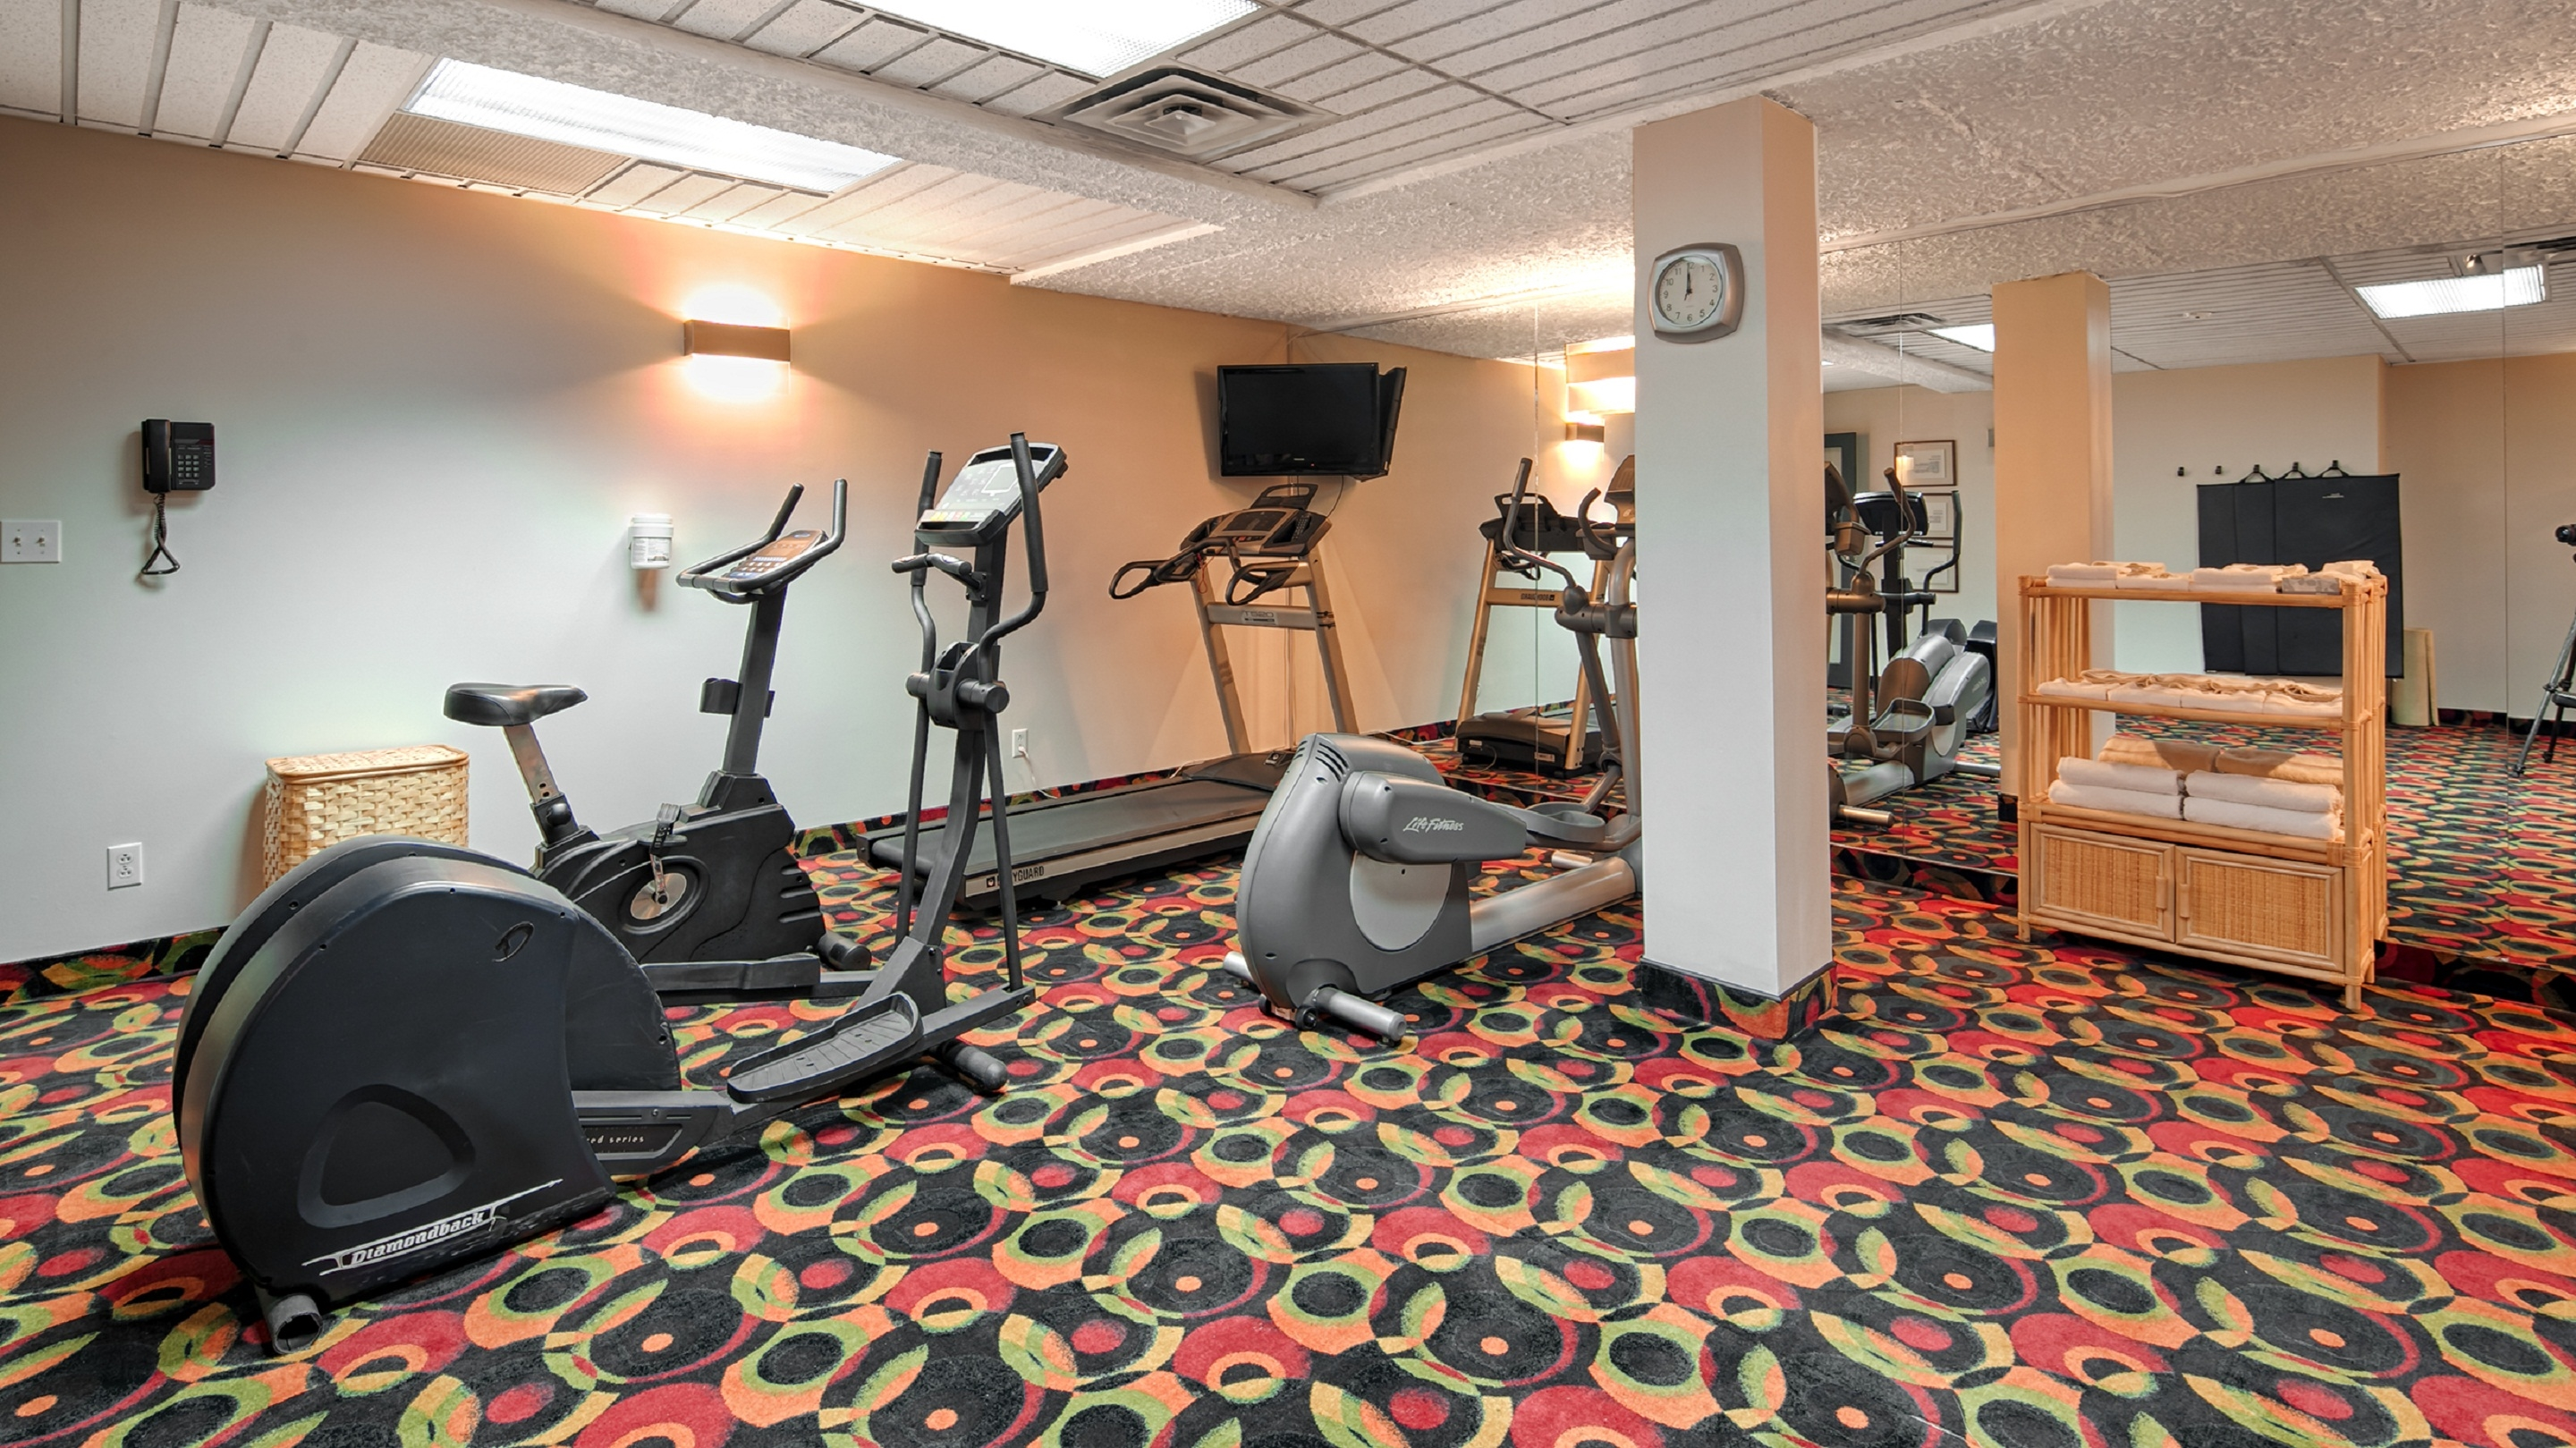 Best Western Plus Hotel Albert Rouyn-Noranda à Rouyn-Noranda: Fitness Center